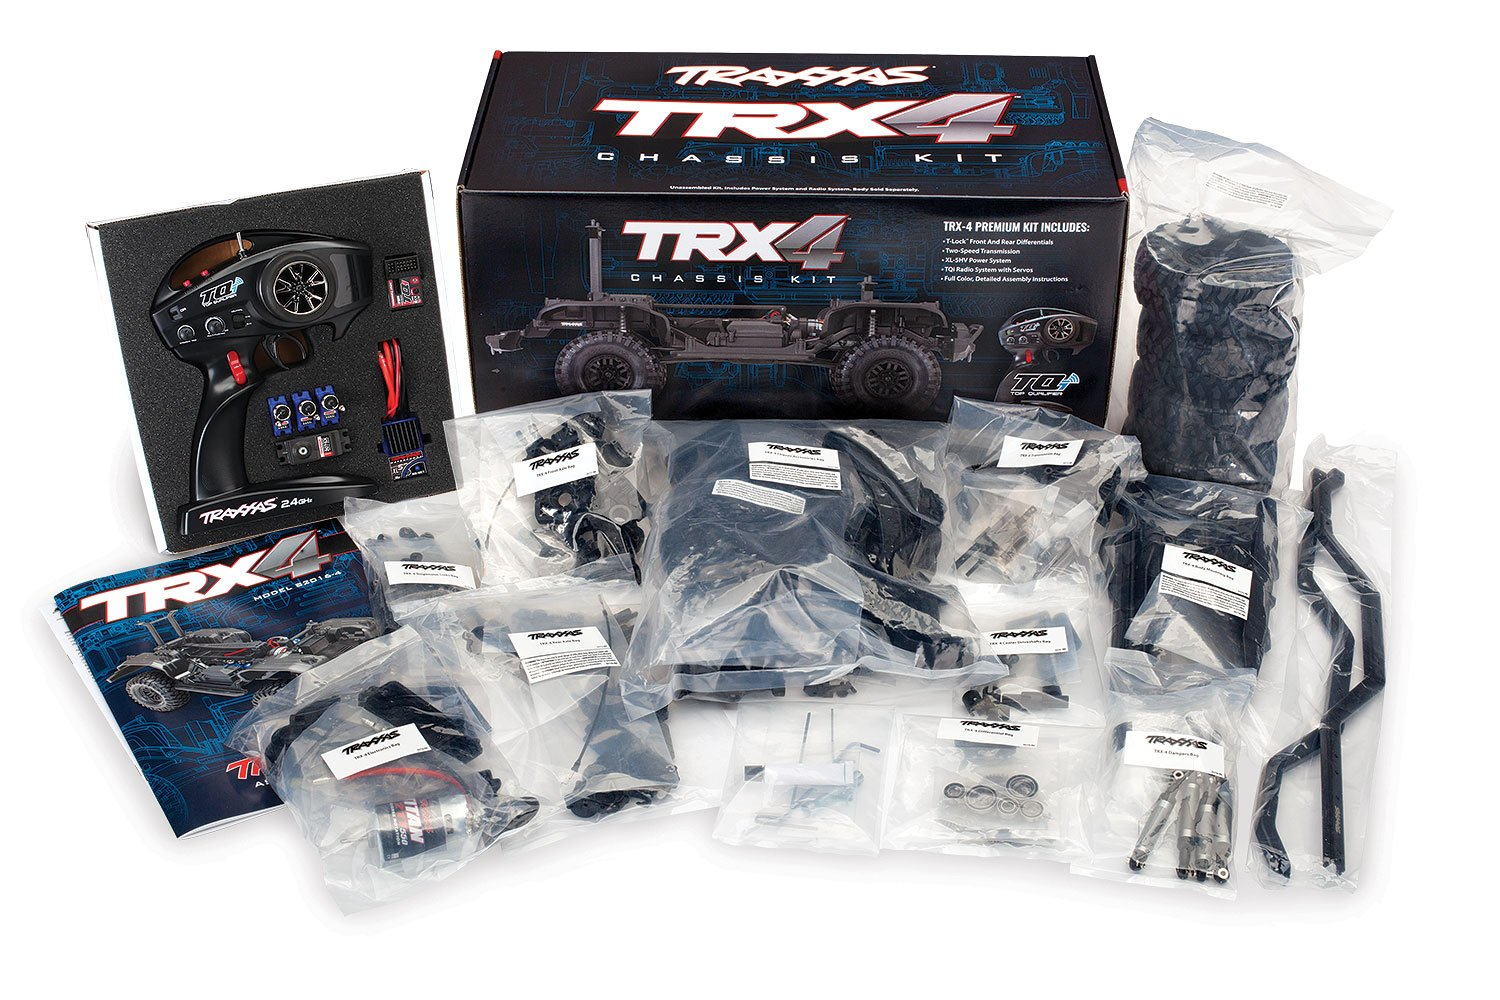 Traxxas 1/10 Scale TRX-4 Trail and Scale Crawler Chassis Kit with 2.4GHz TQi Radio